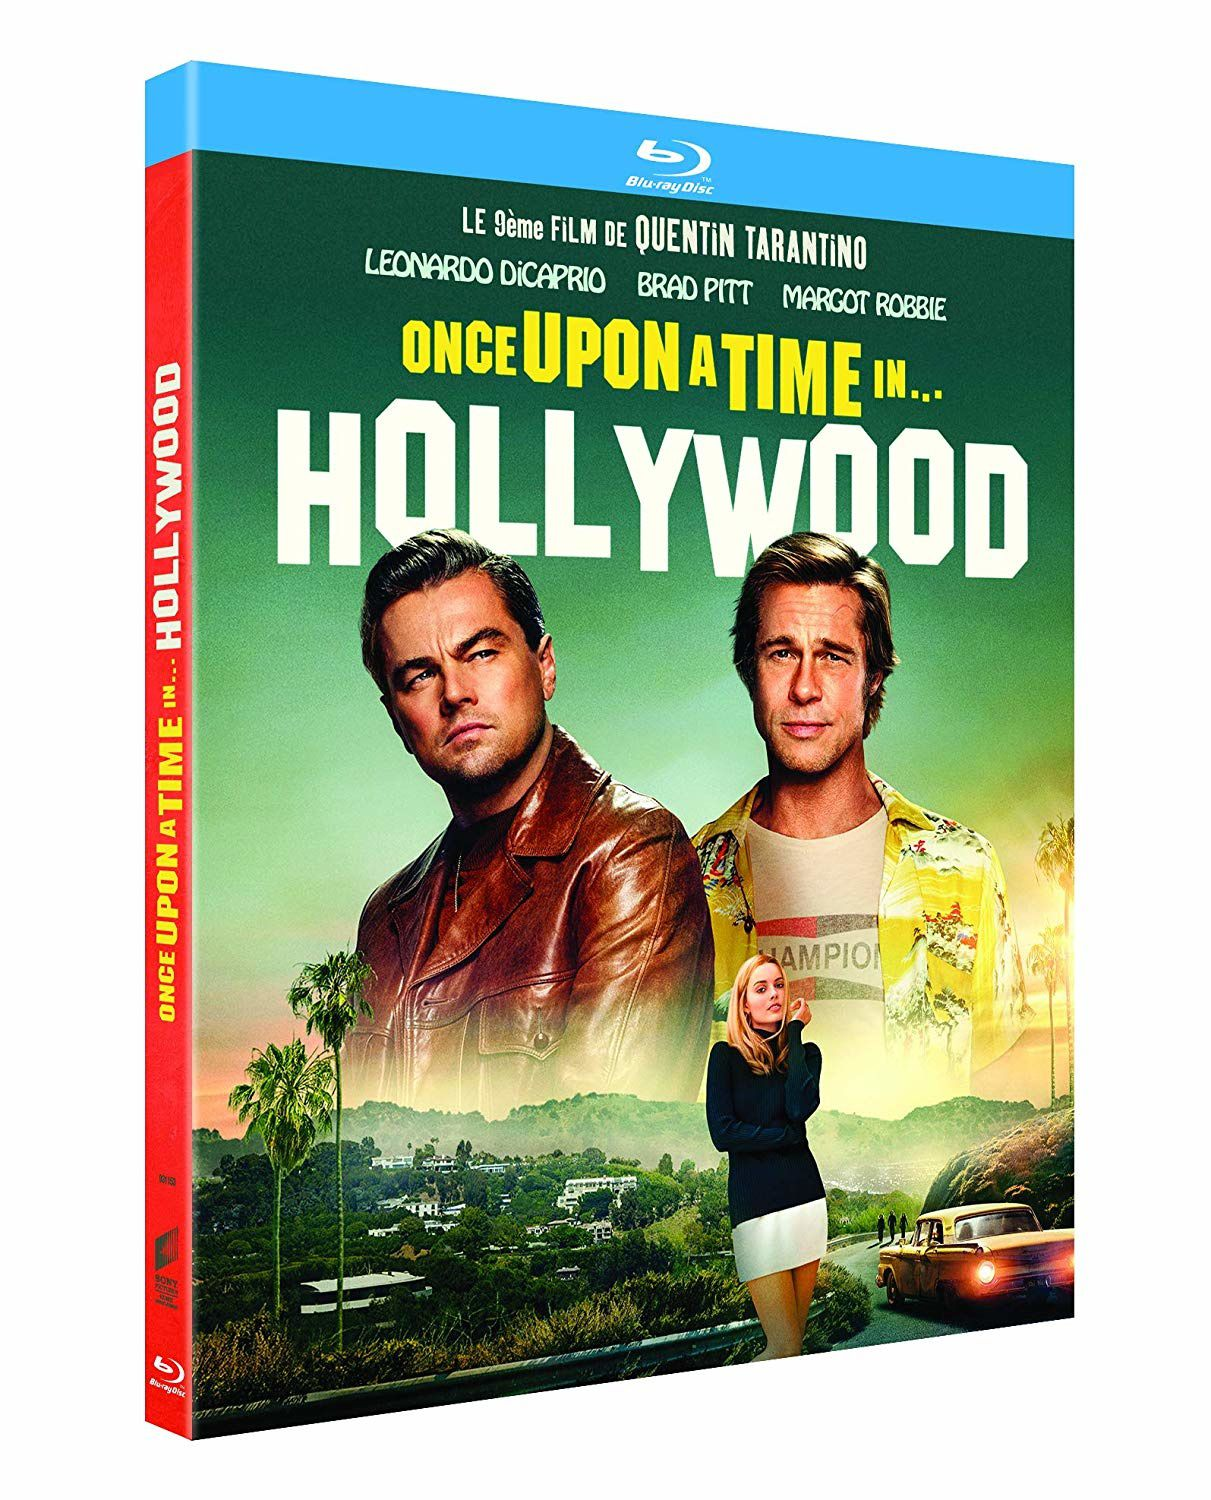 [REVUE CINEMA BLU-RAY] ONCE UPON A TIME IN... HOLLYWOOD